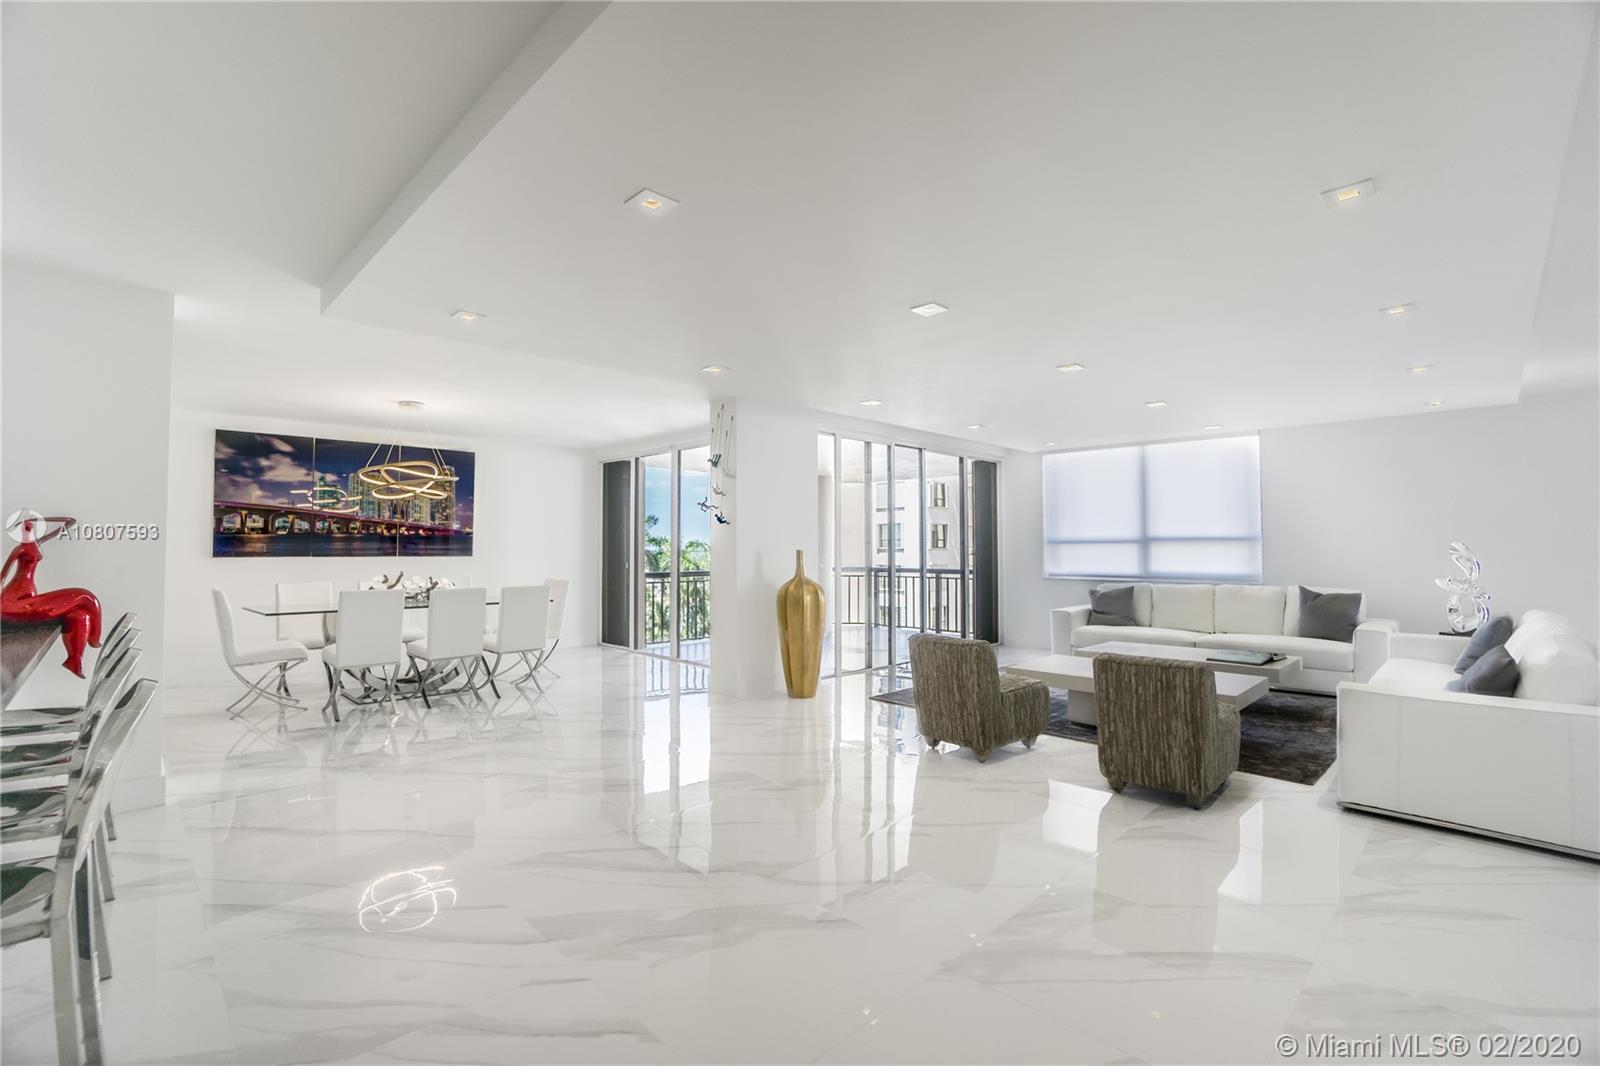 10175 Collins Ave, 505 - Bal Harbour, Florida